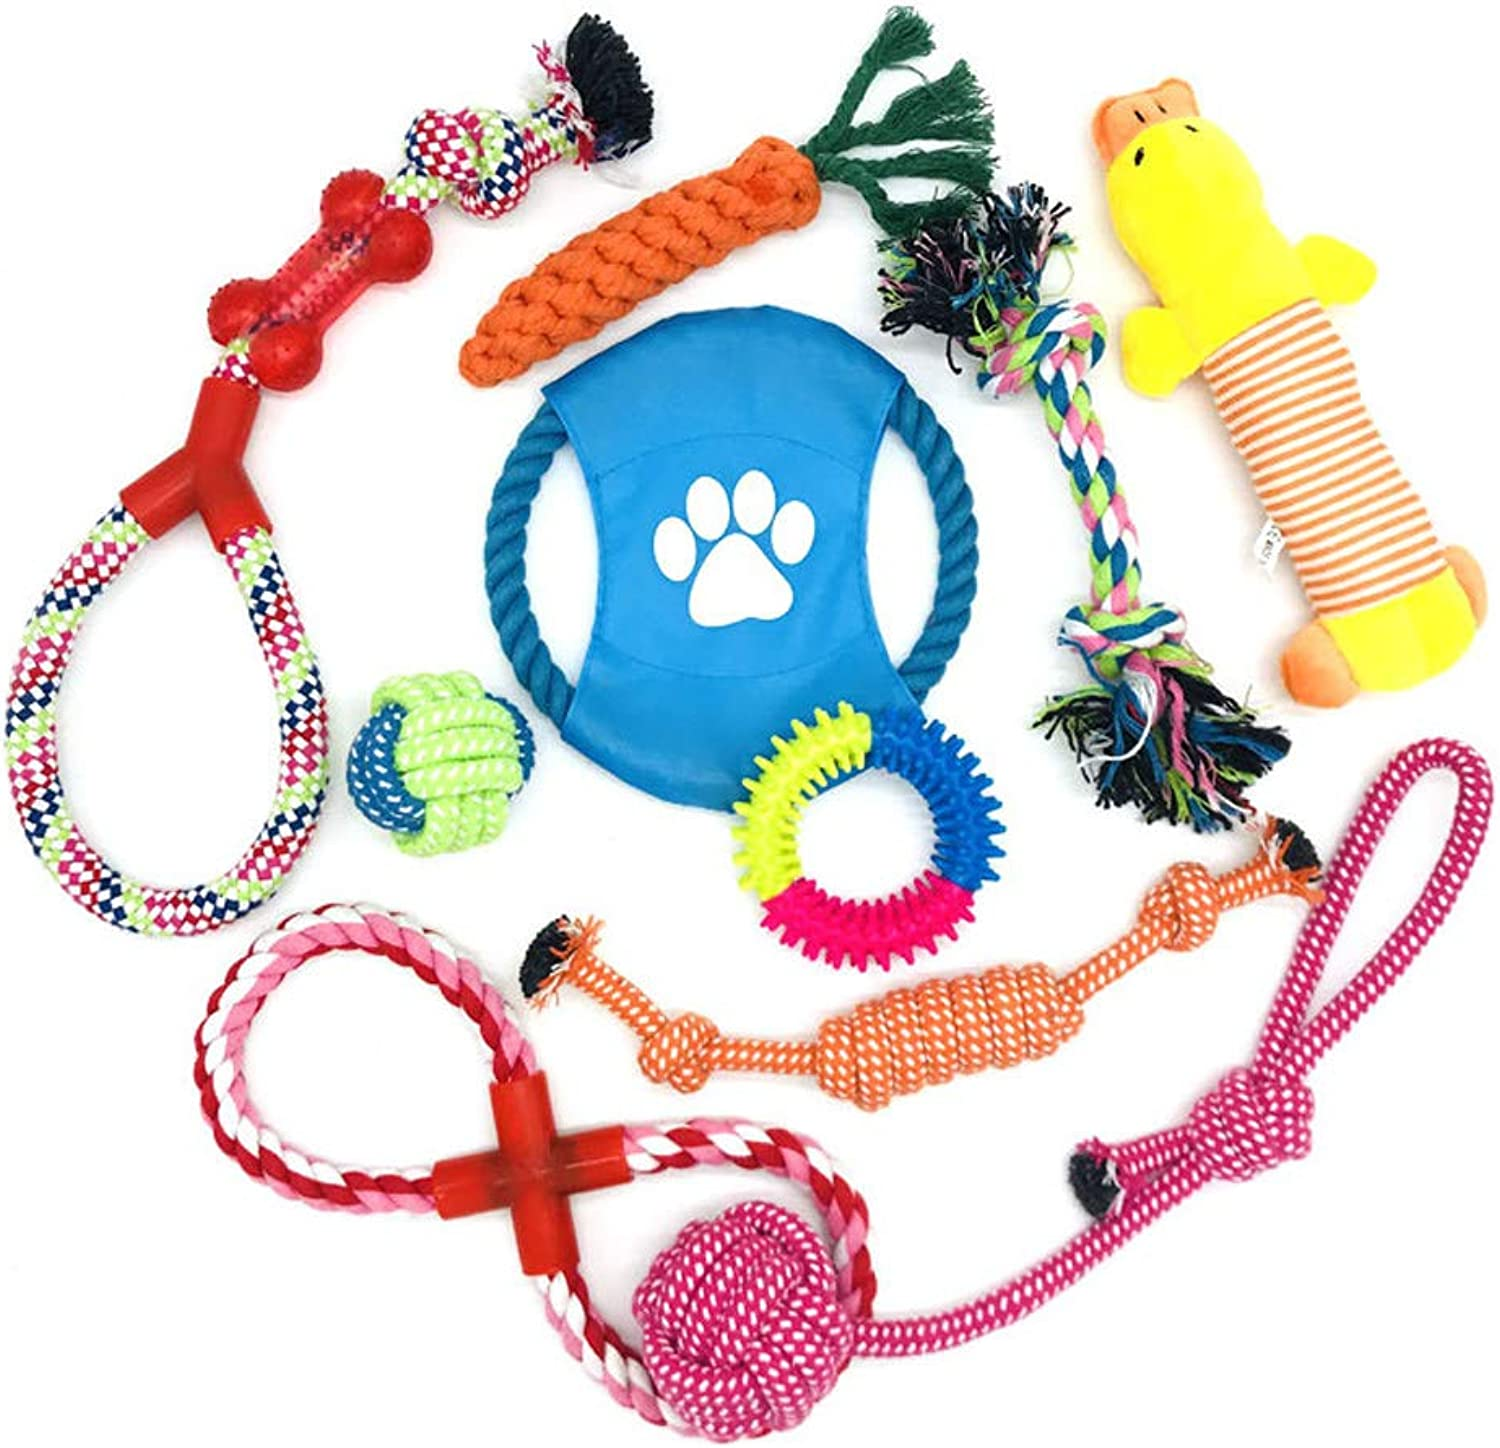 Combination 9Piece Interactive Dog Rope Chew Toys Set, Hand Pet Puppy Braided Cotton Toys, NonToxic Health Teeth Cleaning for Small Medium Dogs